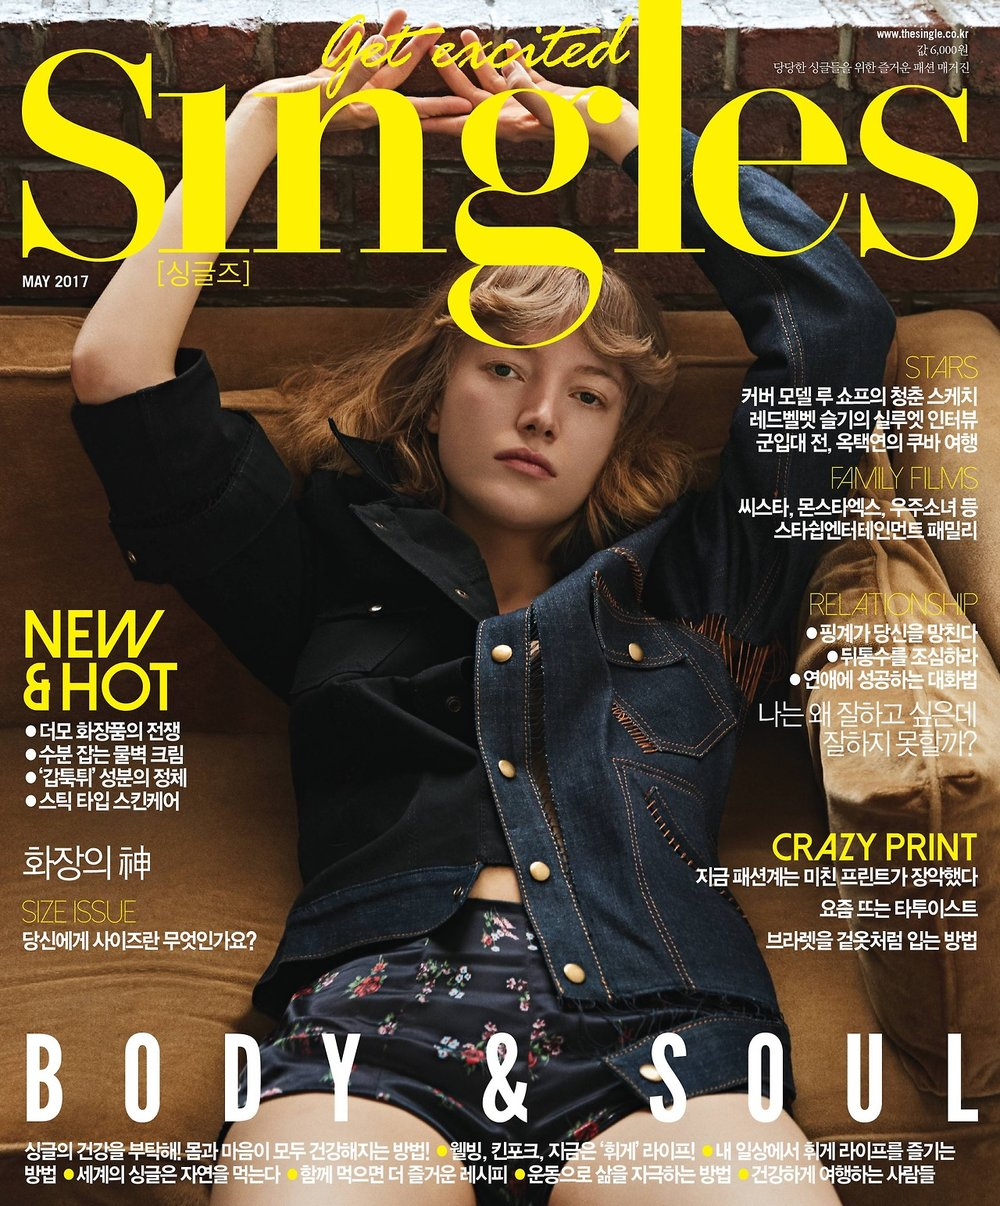 Lou Schoof by Hong Jang Hyun for Singles Magazine